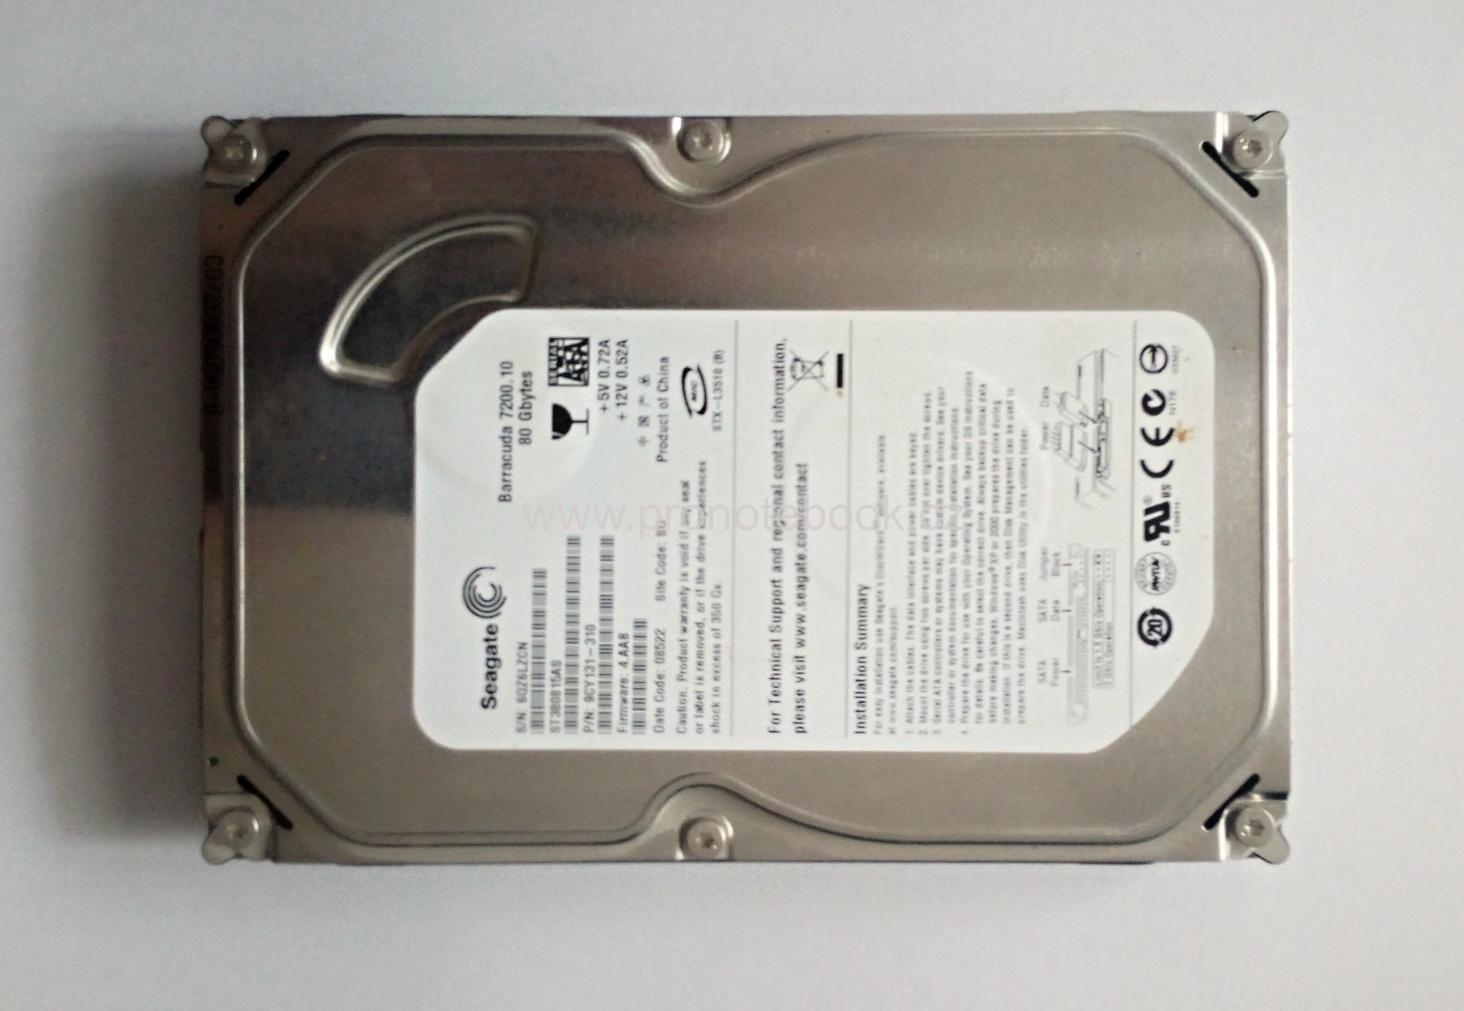 Seagate Barracuda 80GB 7200 RPM SATA, ST380815AS